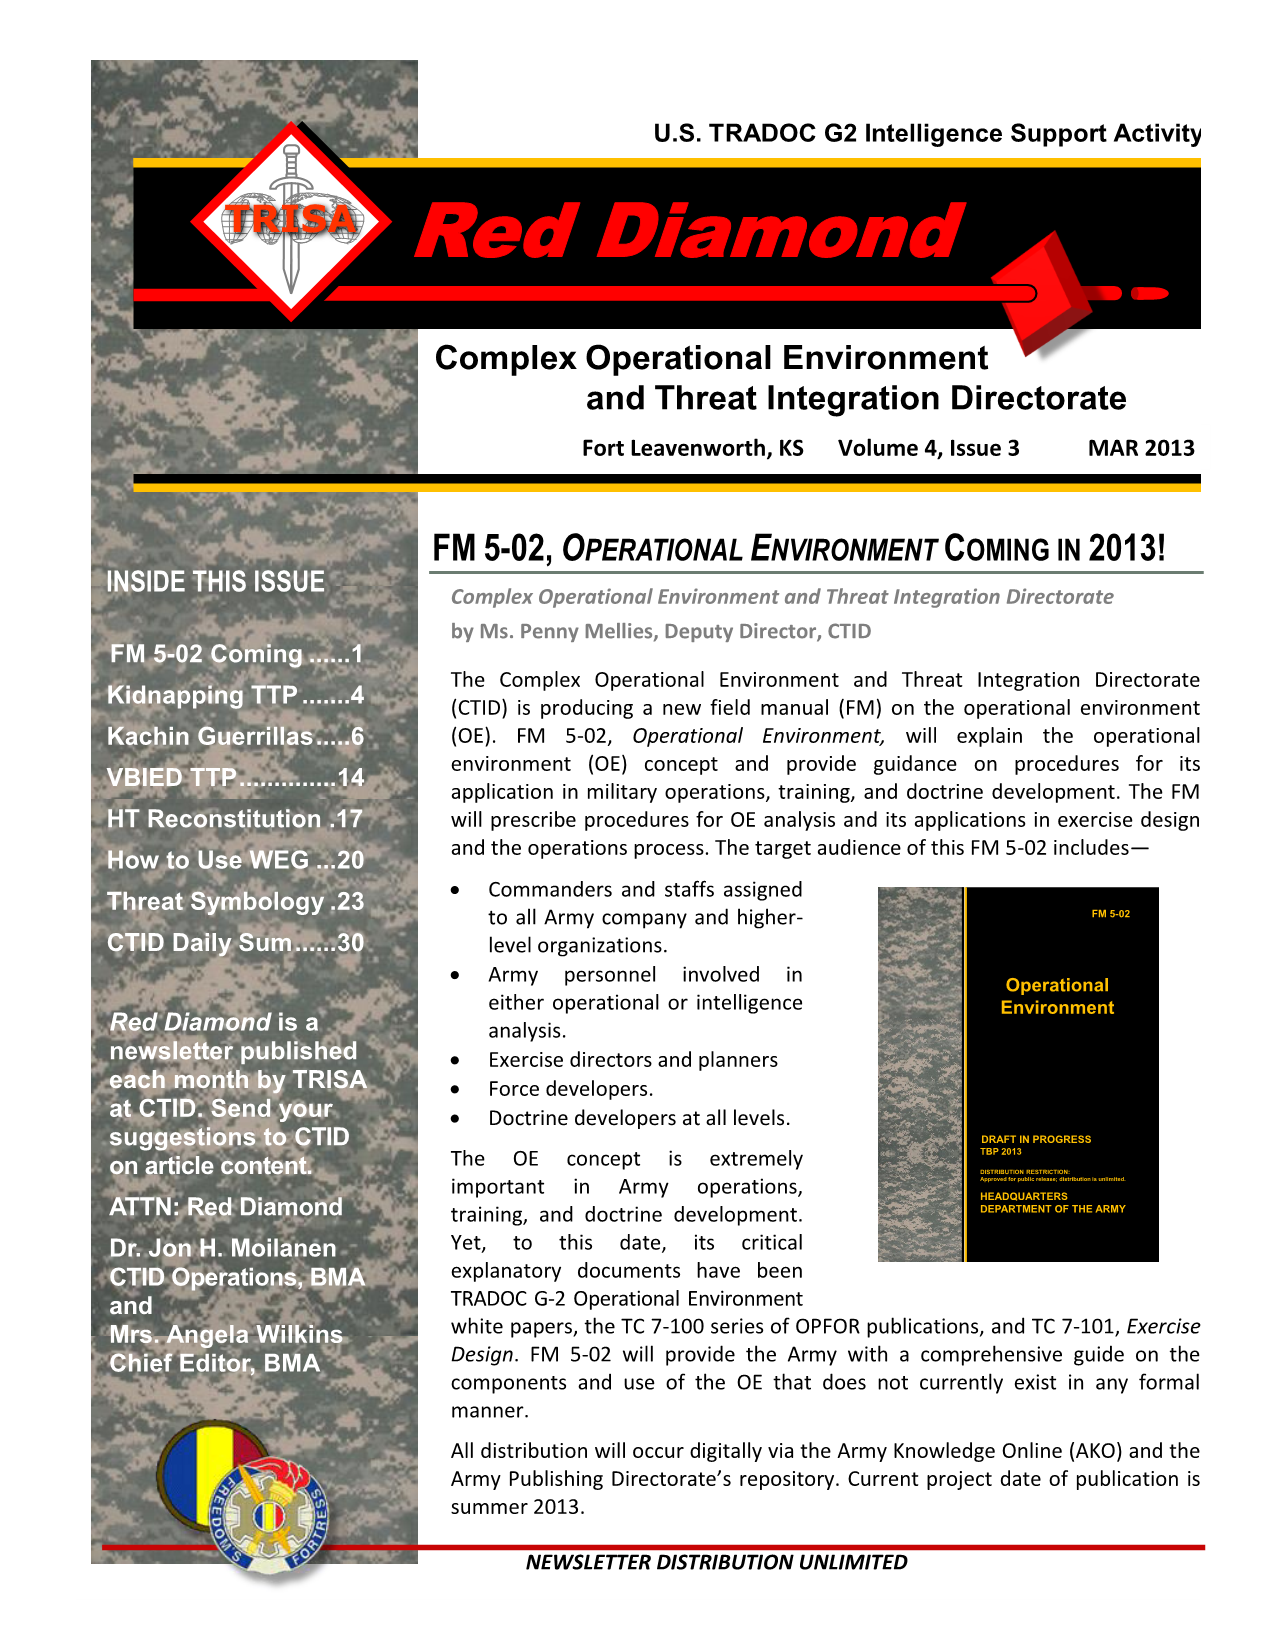 OEE Red Diamond MAR13 - Documents - ACE Threats Integration